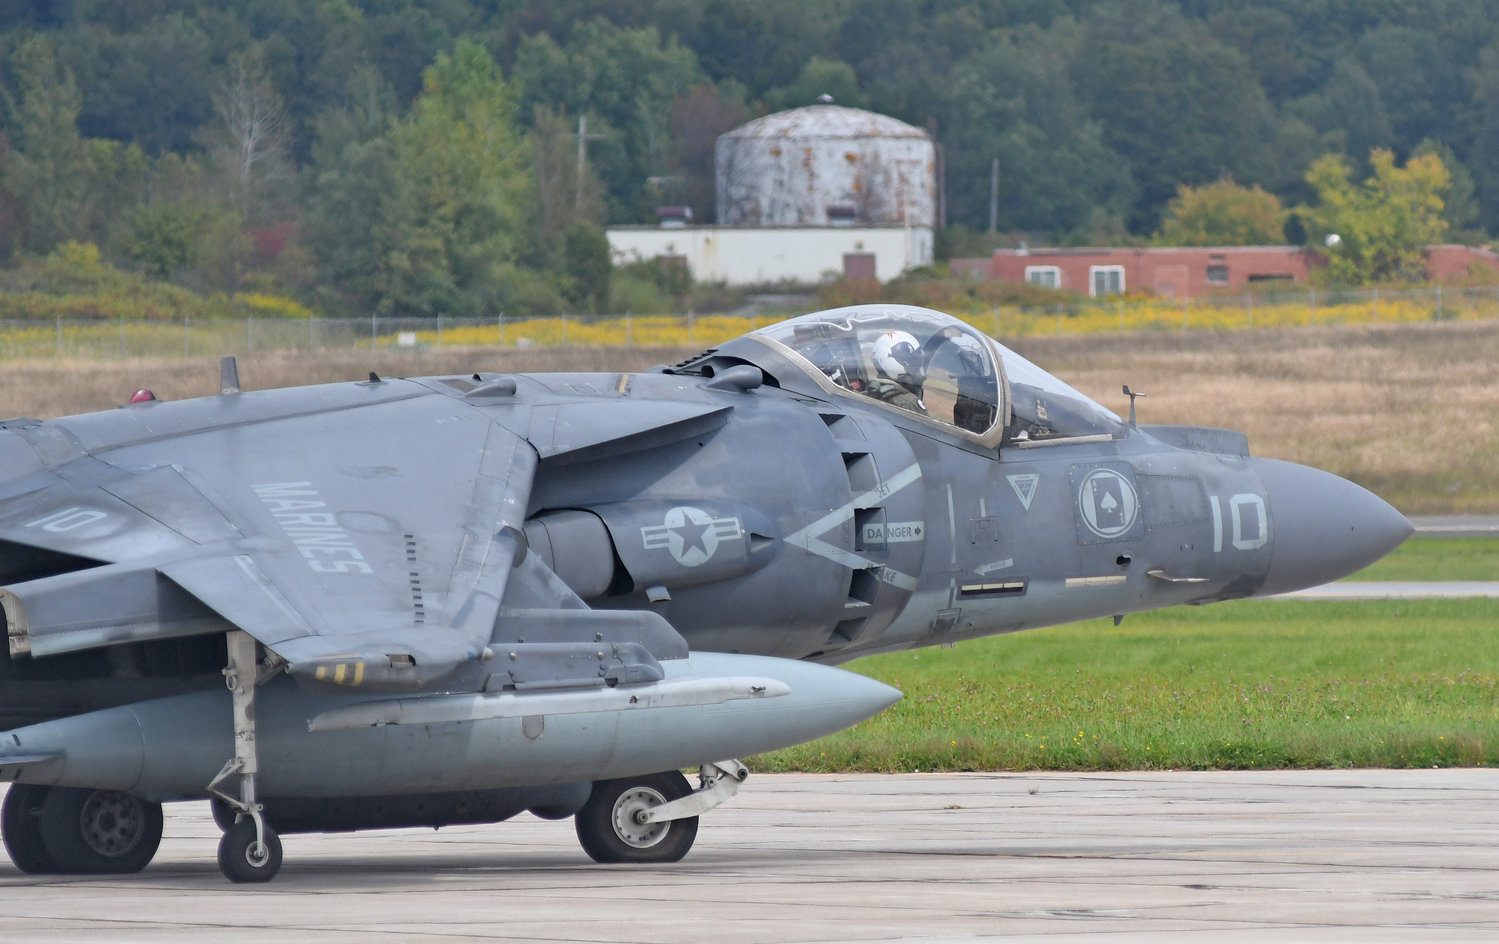 A Harrier pilot taxi's out to Griffiss runway Tuesday afternoon. The planes and crew are from Cherry Point, NC and will be in Rome all week doing exercises.